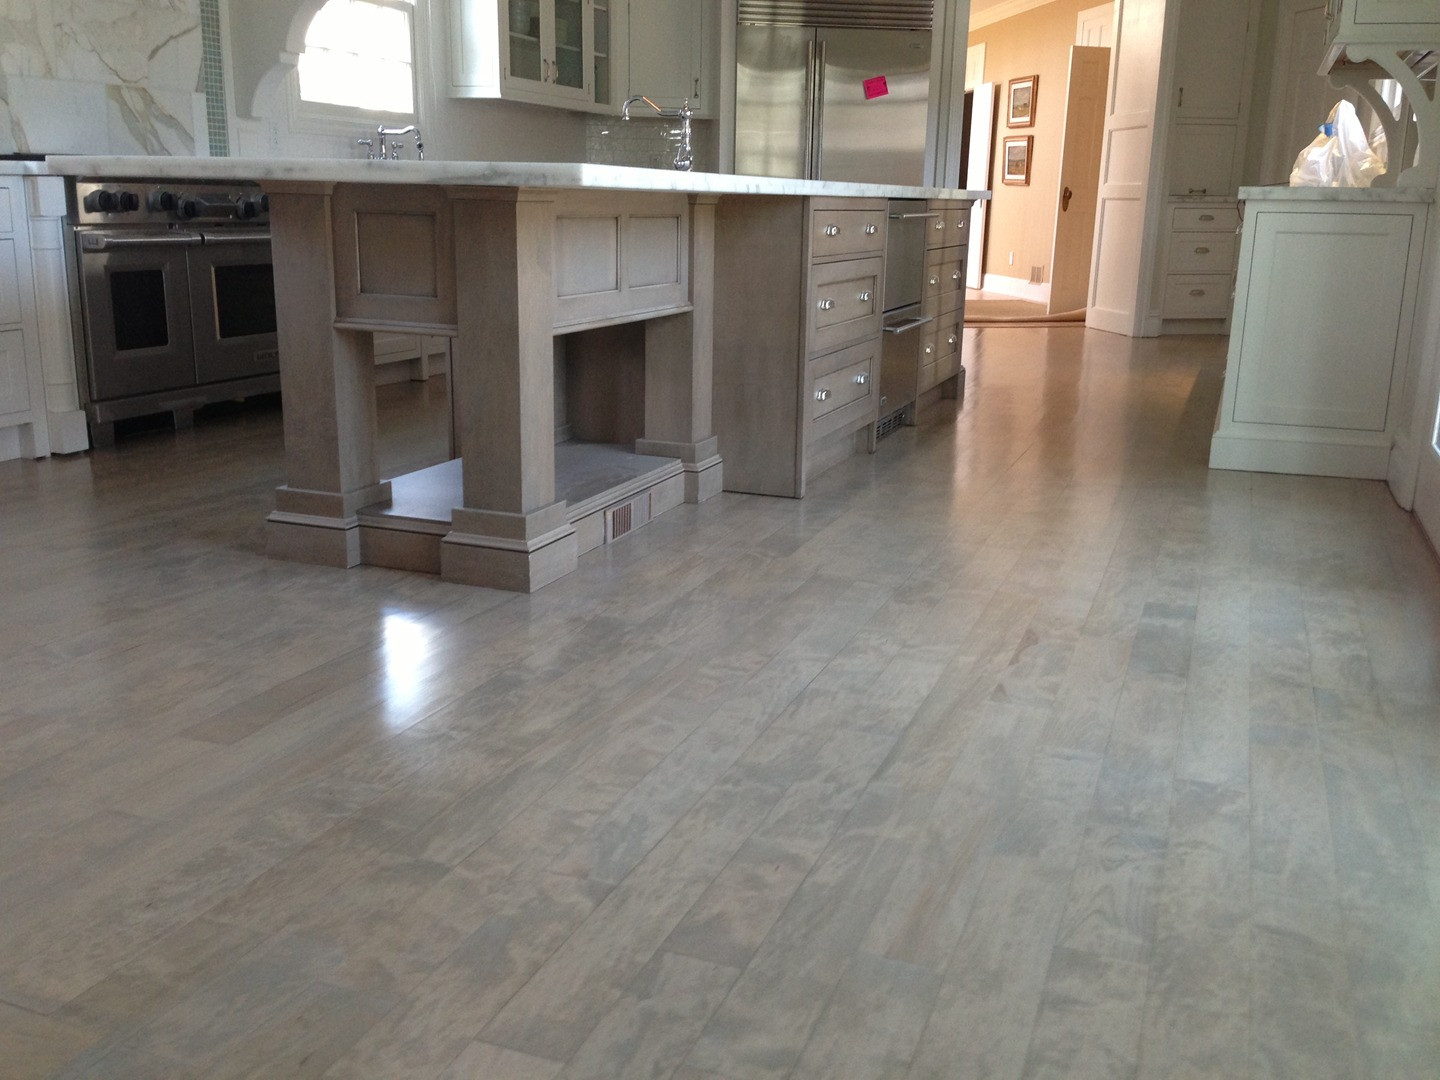 20 Ideal Hardwood Floor Installation Nj 2021 free download hardwood floor installation nj of j r hardwood floors l l c home for classic grey stain